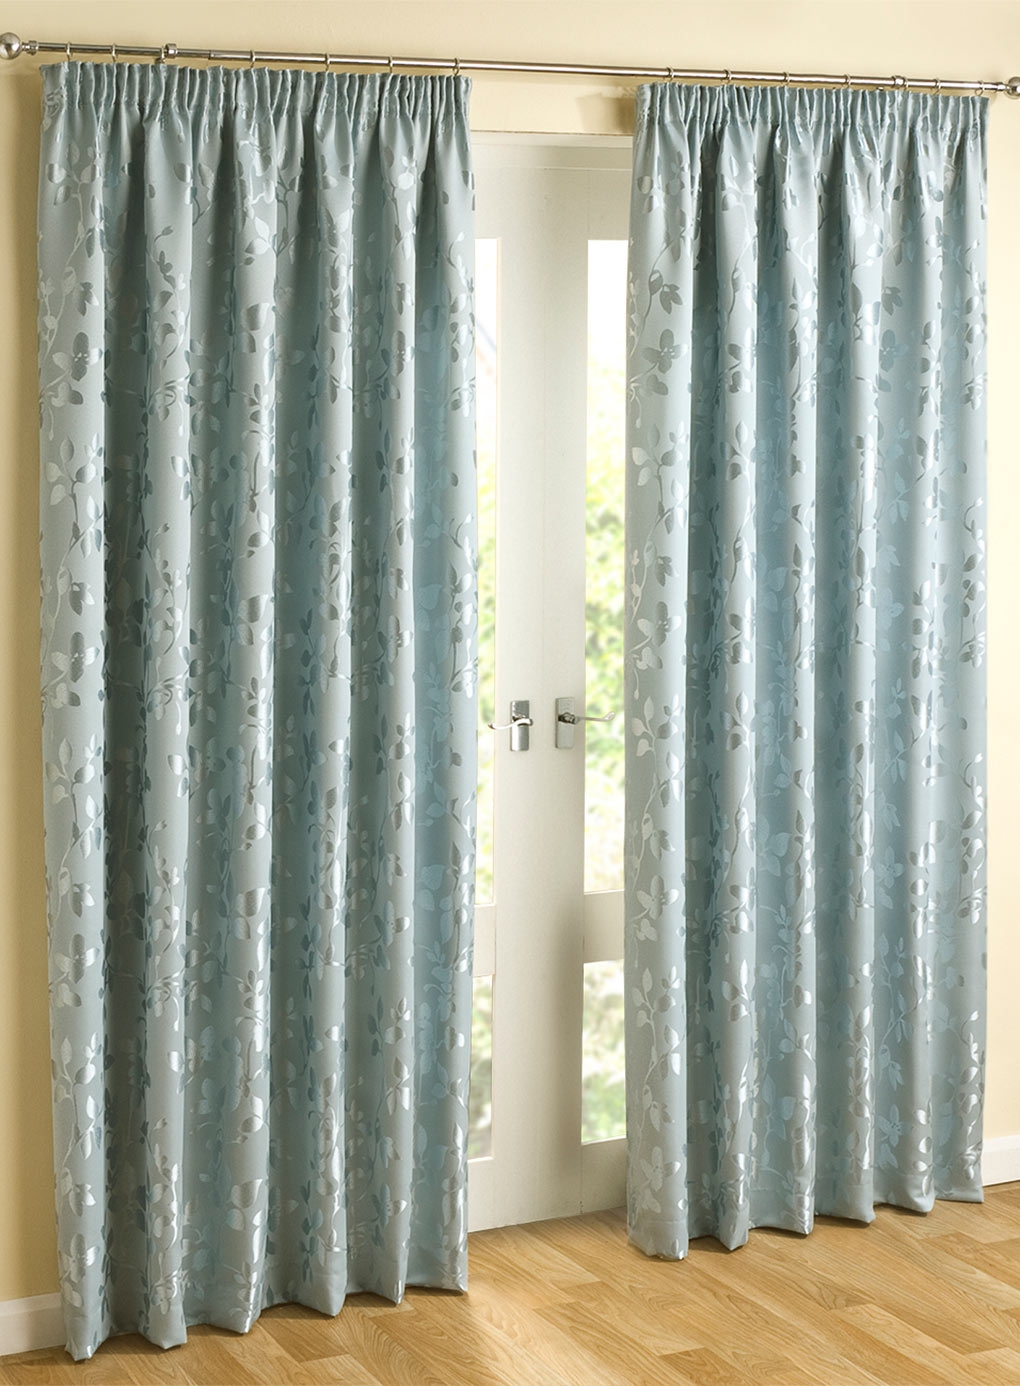 Alice Pencil Pleat Curtain Duck Egg Curtains Accessories With Pencil Pleat Curtains (Image 1 of 15)